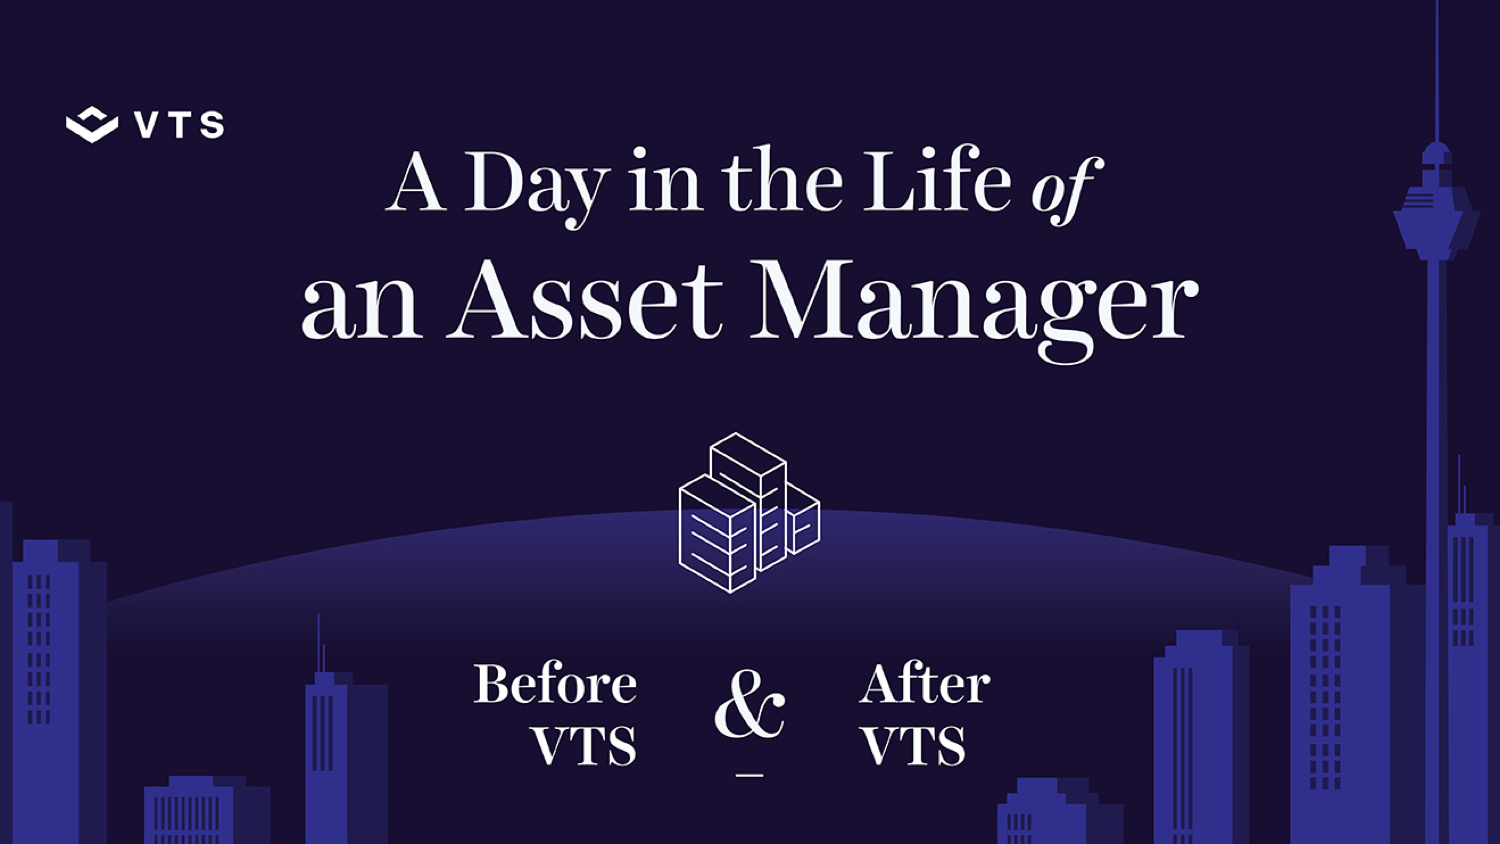 A Day in the Life of an Asset Manager: Before & After VTS Infographic